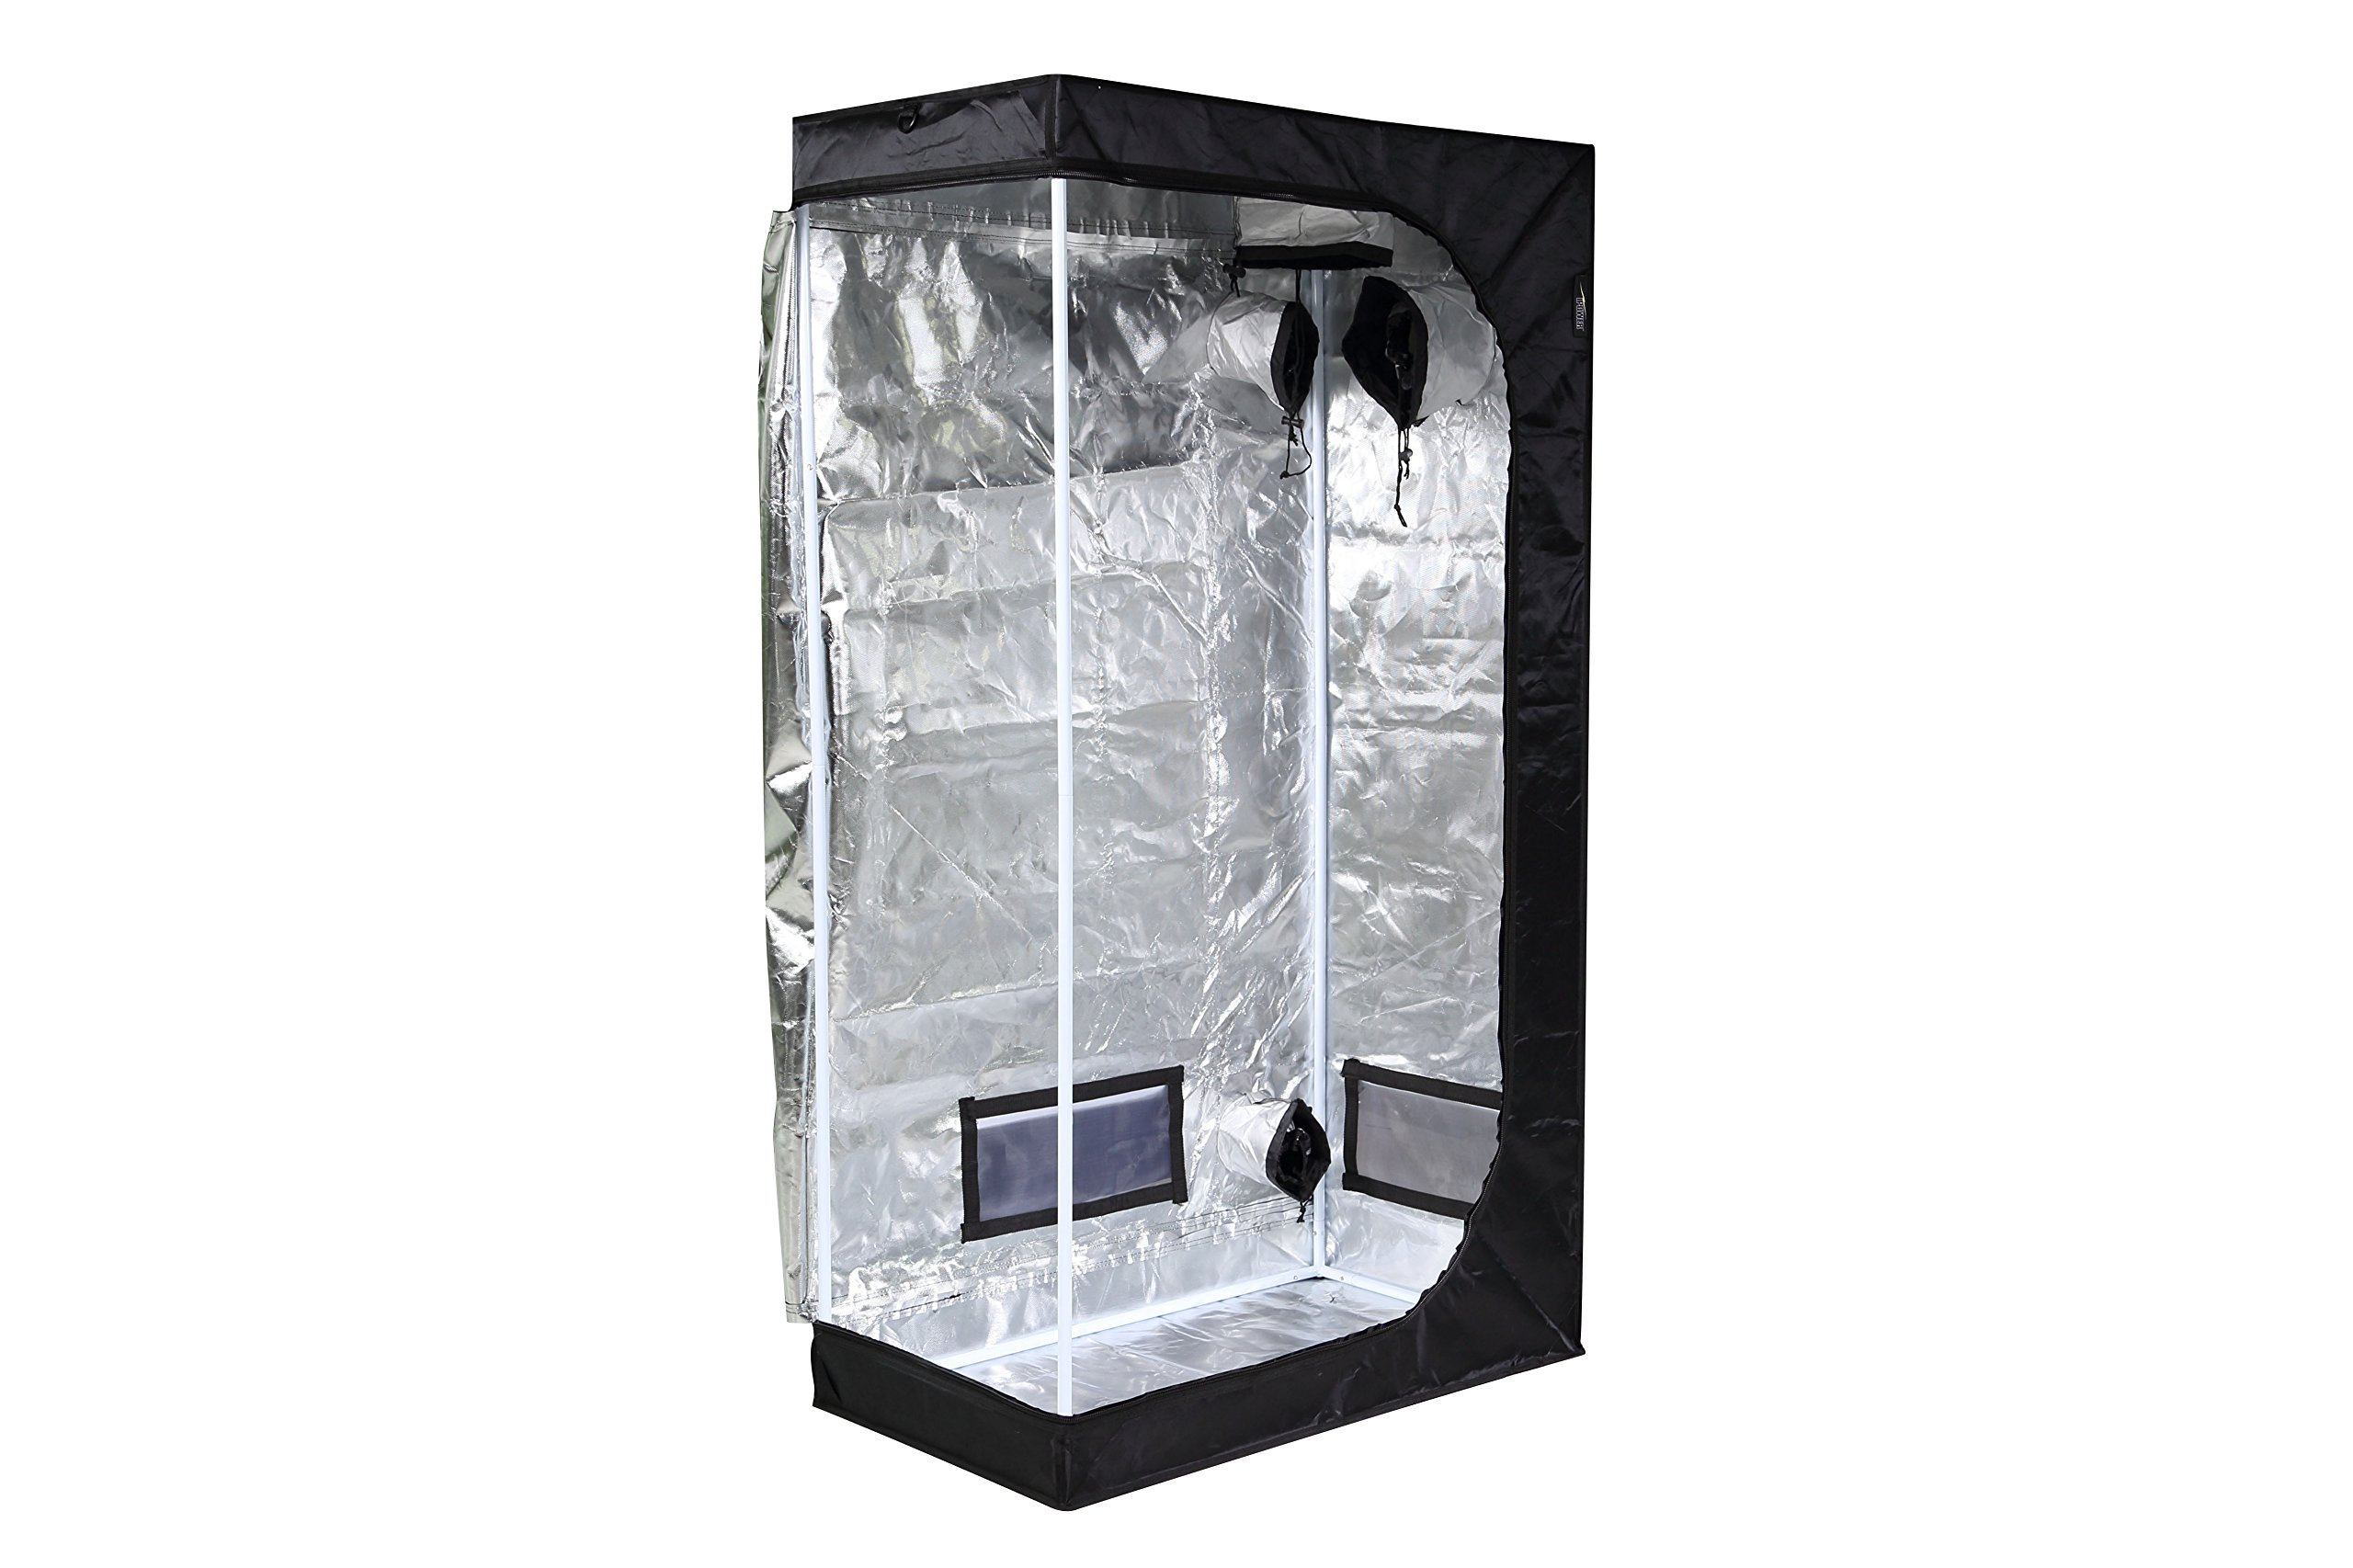 iPower 36''x20''x62'' Hydroponic Mylar Grow Tent with Observation Window, Tool Bag and Floor Tray for Grow Light and Indoor Plant Growing